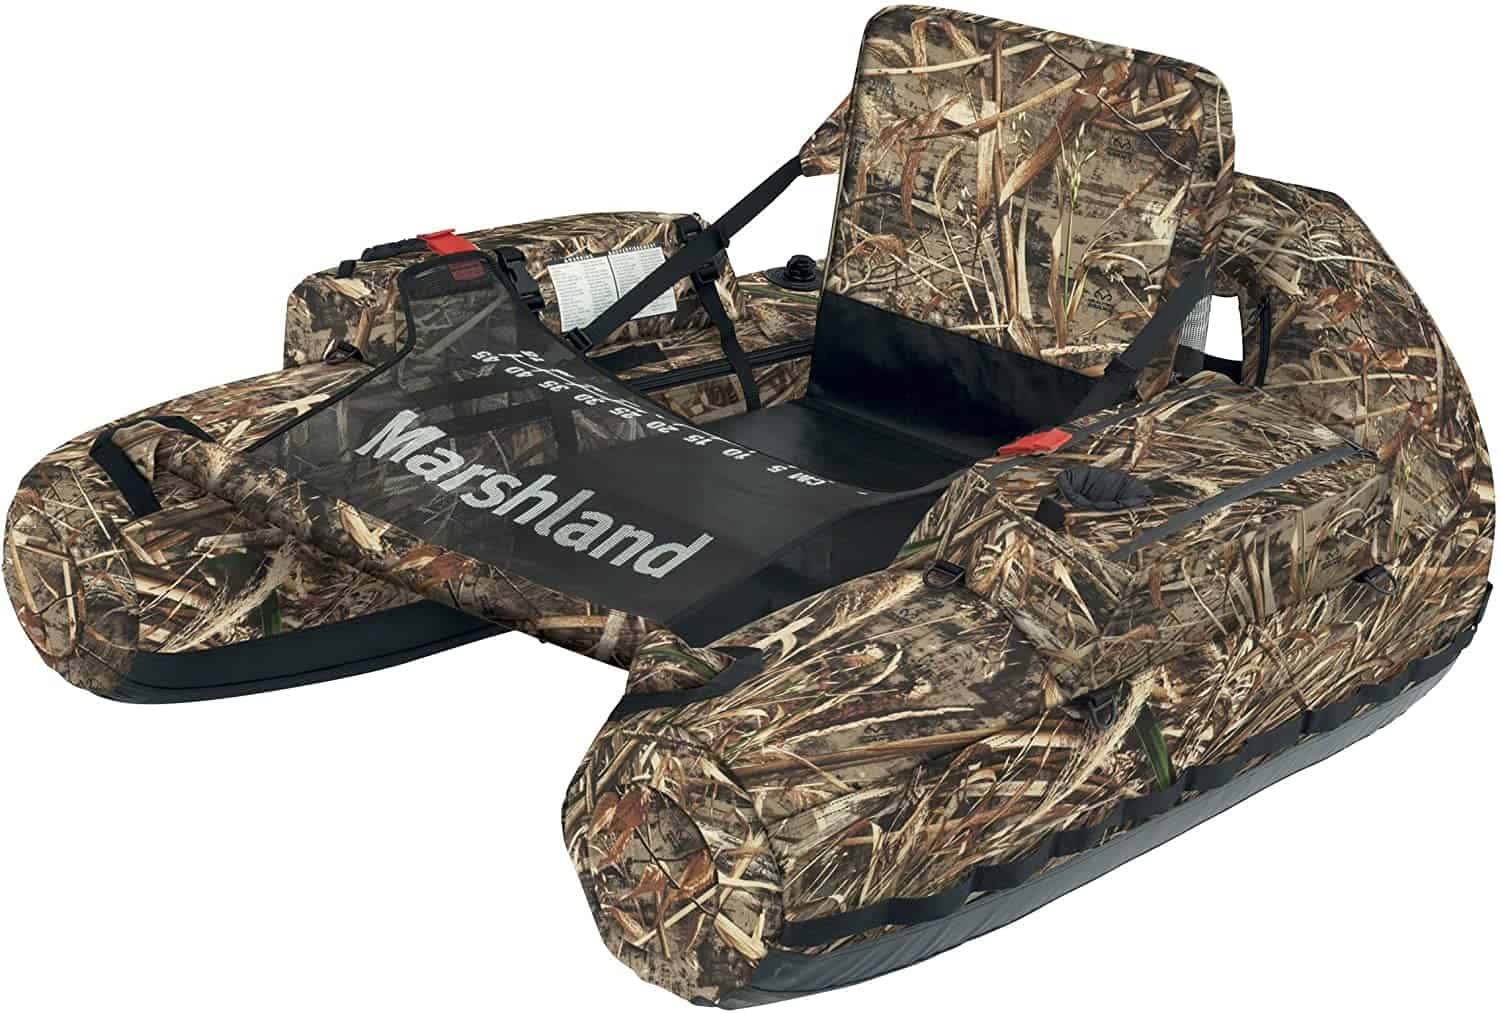 Marshland Float Tube by Classic Accessories